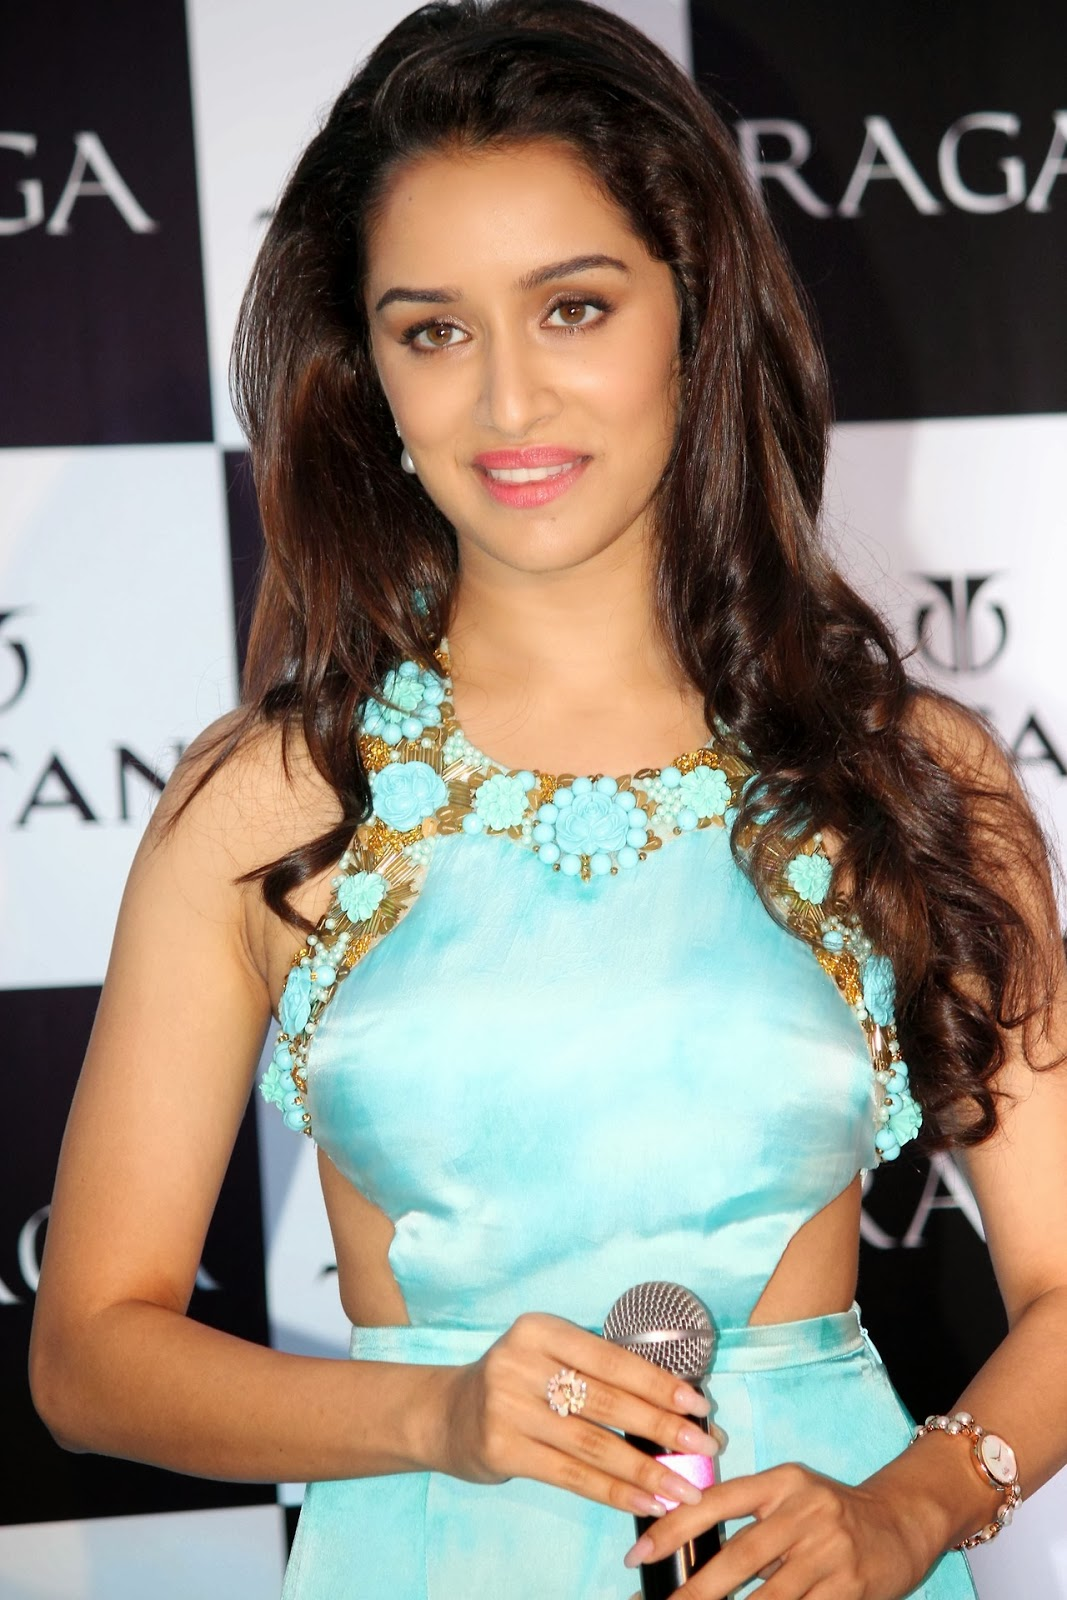 Shraddha Kapoor Launches Raga Pearls Collection Of Watches